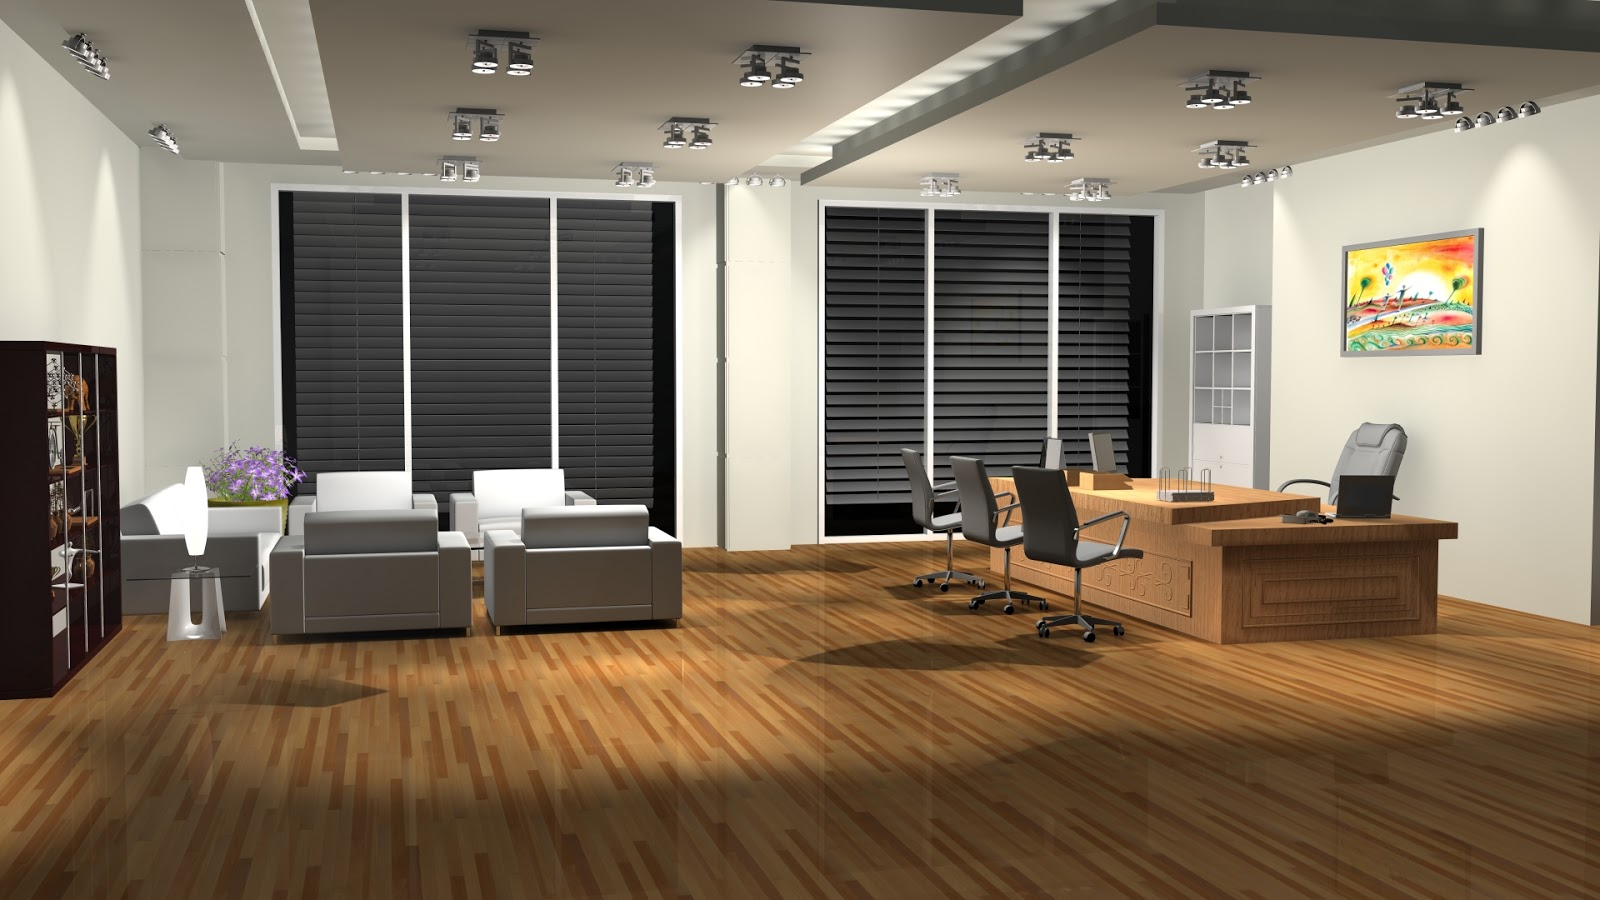 Sajid designs office room 3d interior design 3ds max Create a 3d room